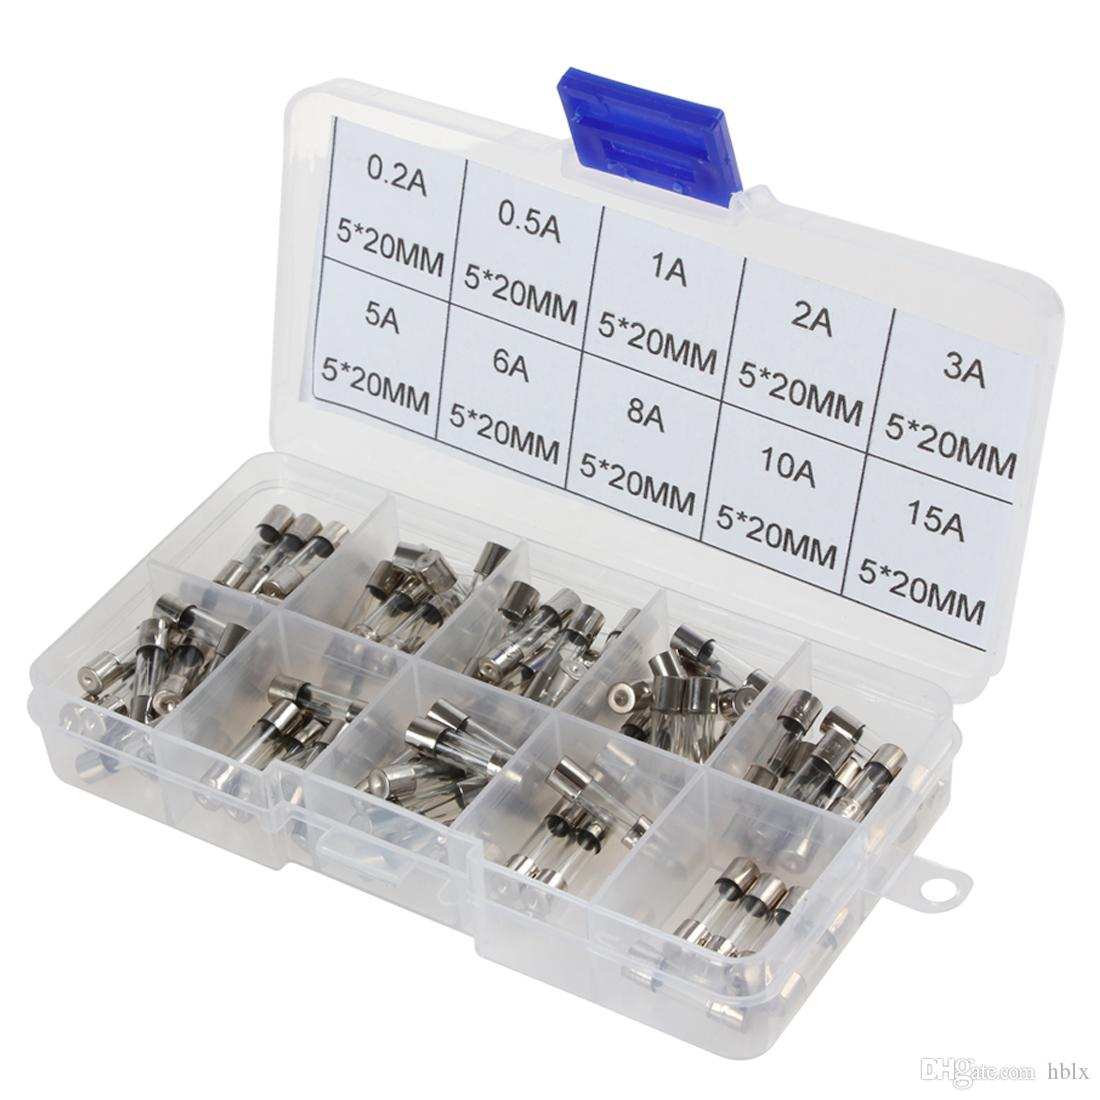 100 pz 5x20mm Veloce Quick Blow Glass Tube Fuse Assortimento 0.2A 0.5A 1A 2A 3A / 5A 6A 8A 10A 15A CEC_938